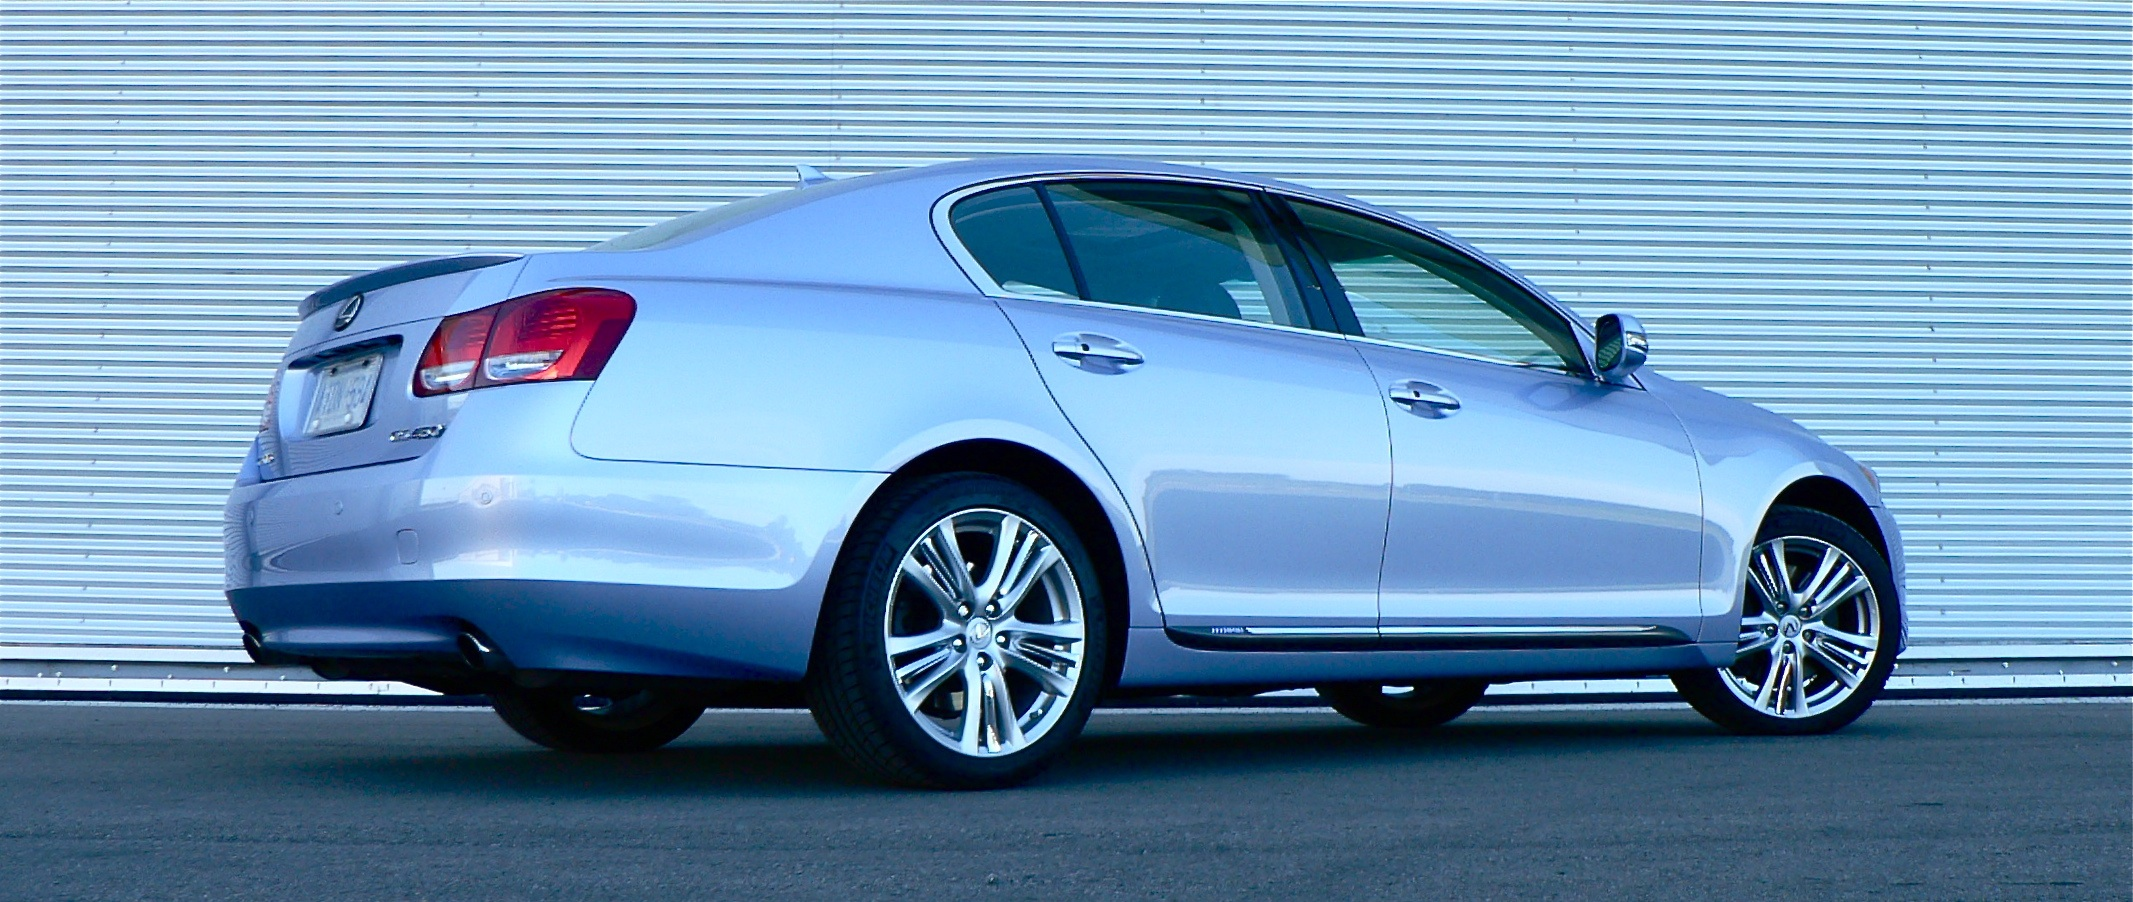 Road Test: 2008 Lexus GS 450h : John LeBlanc's straight-six